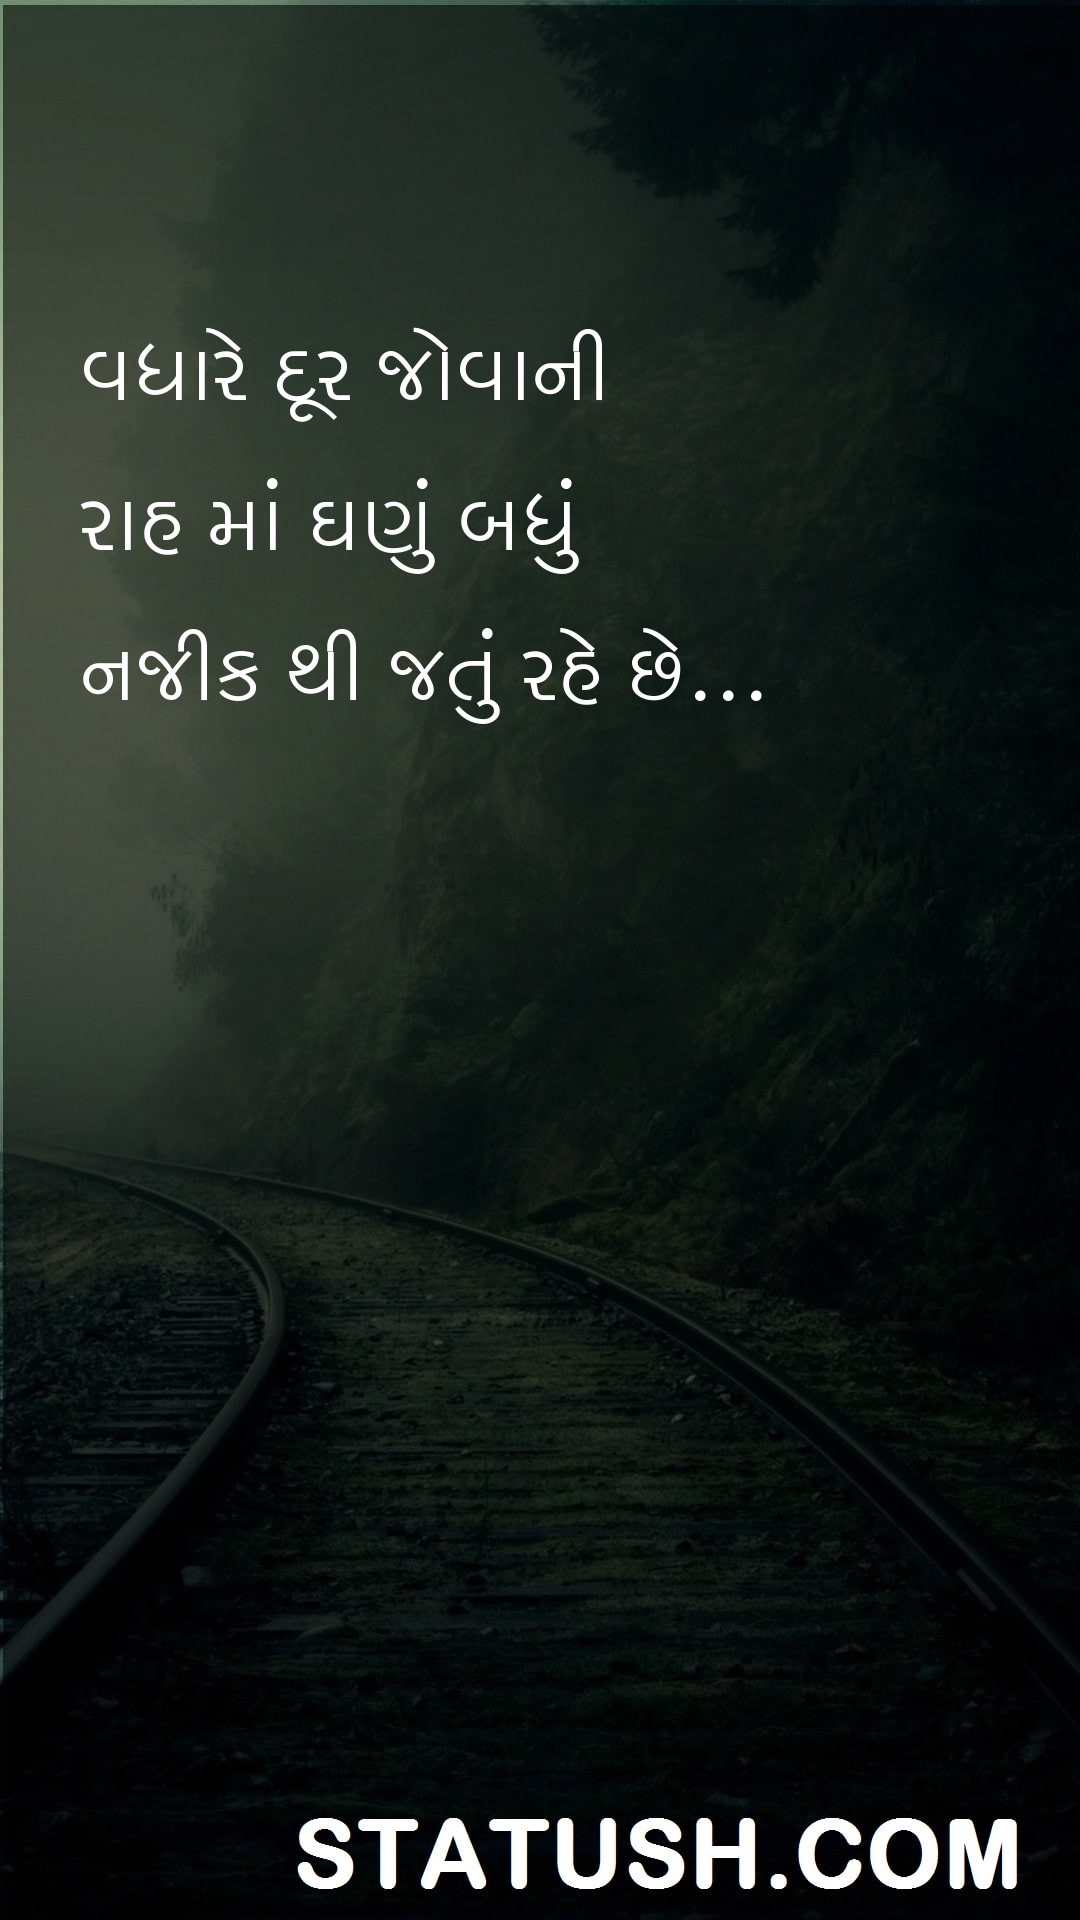 Gujarati Quotes at statush.com